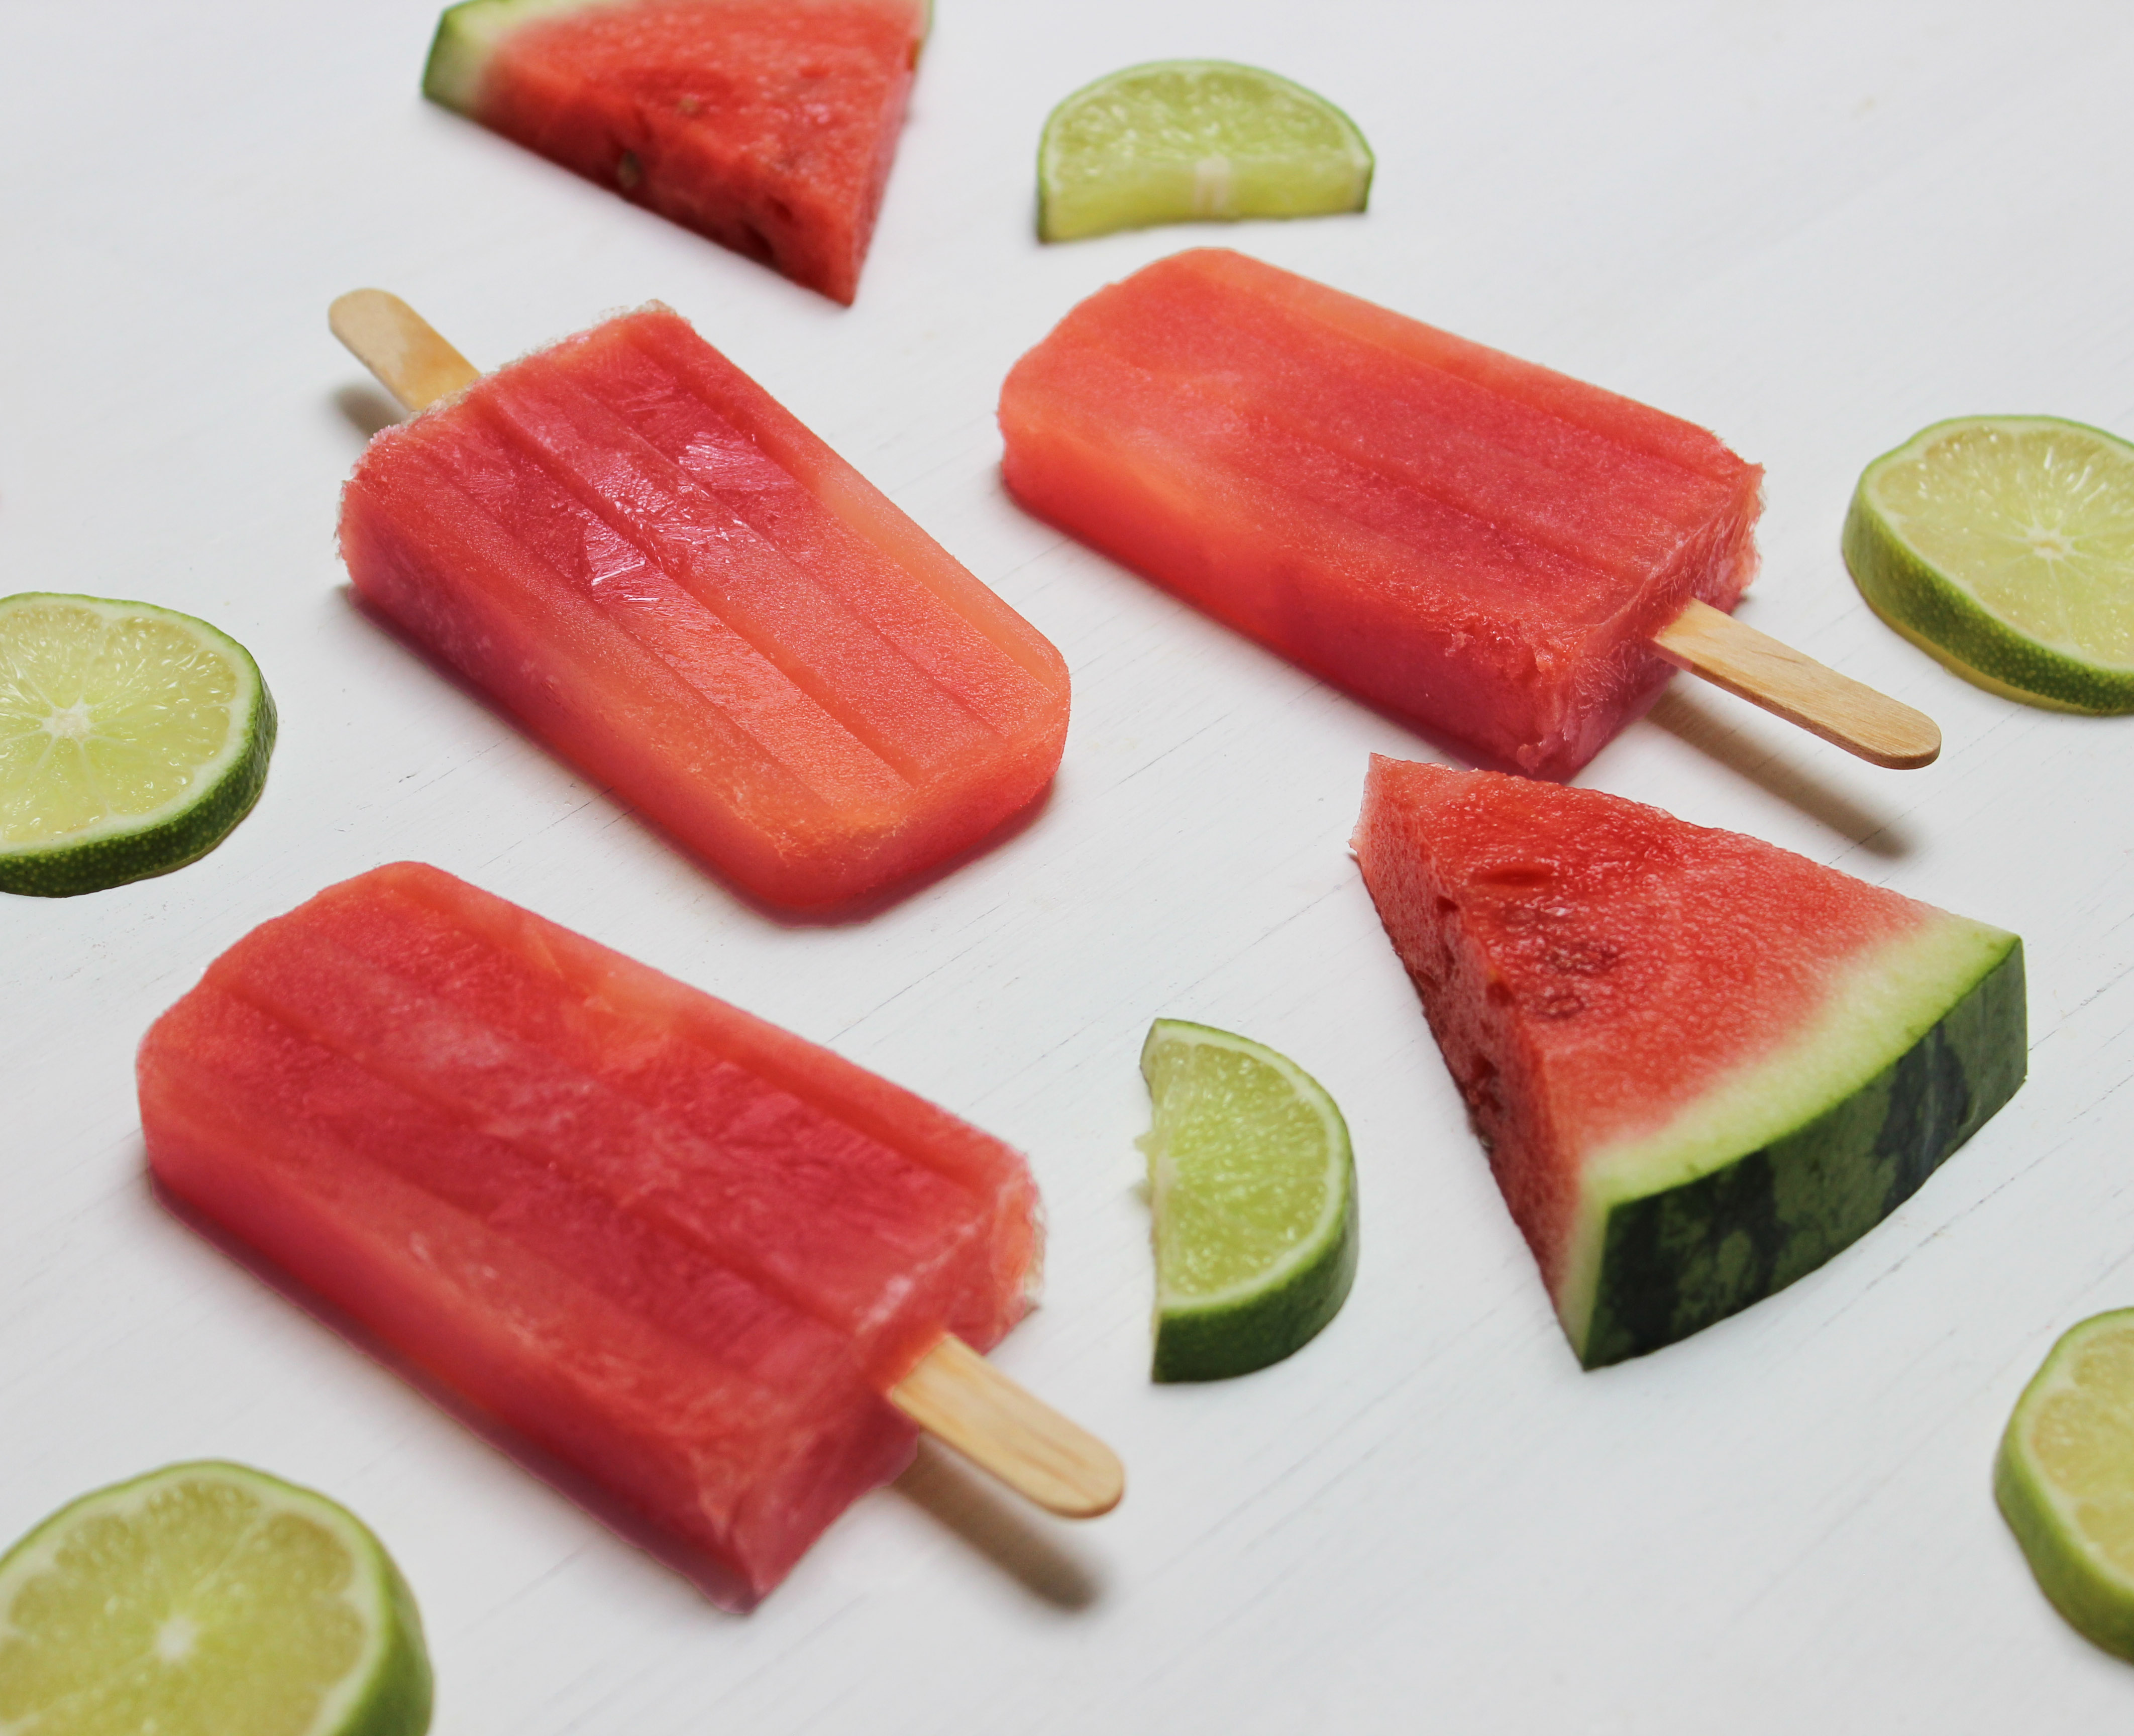 ... watermelon margarita popsicles watermelon margarita popsicles